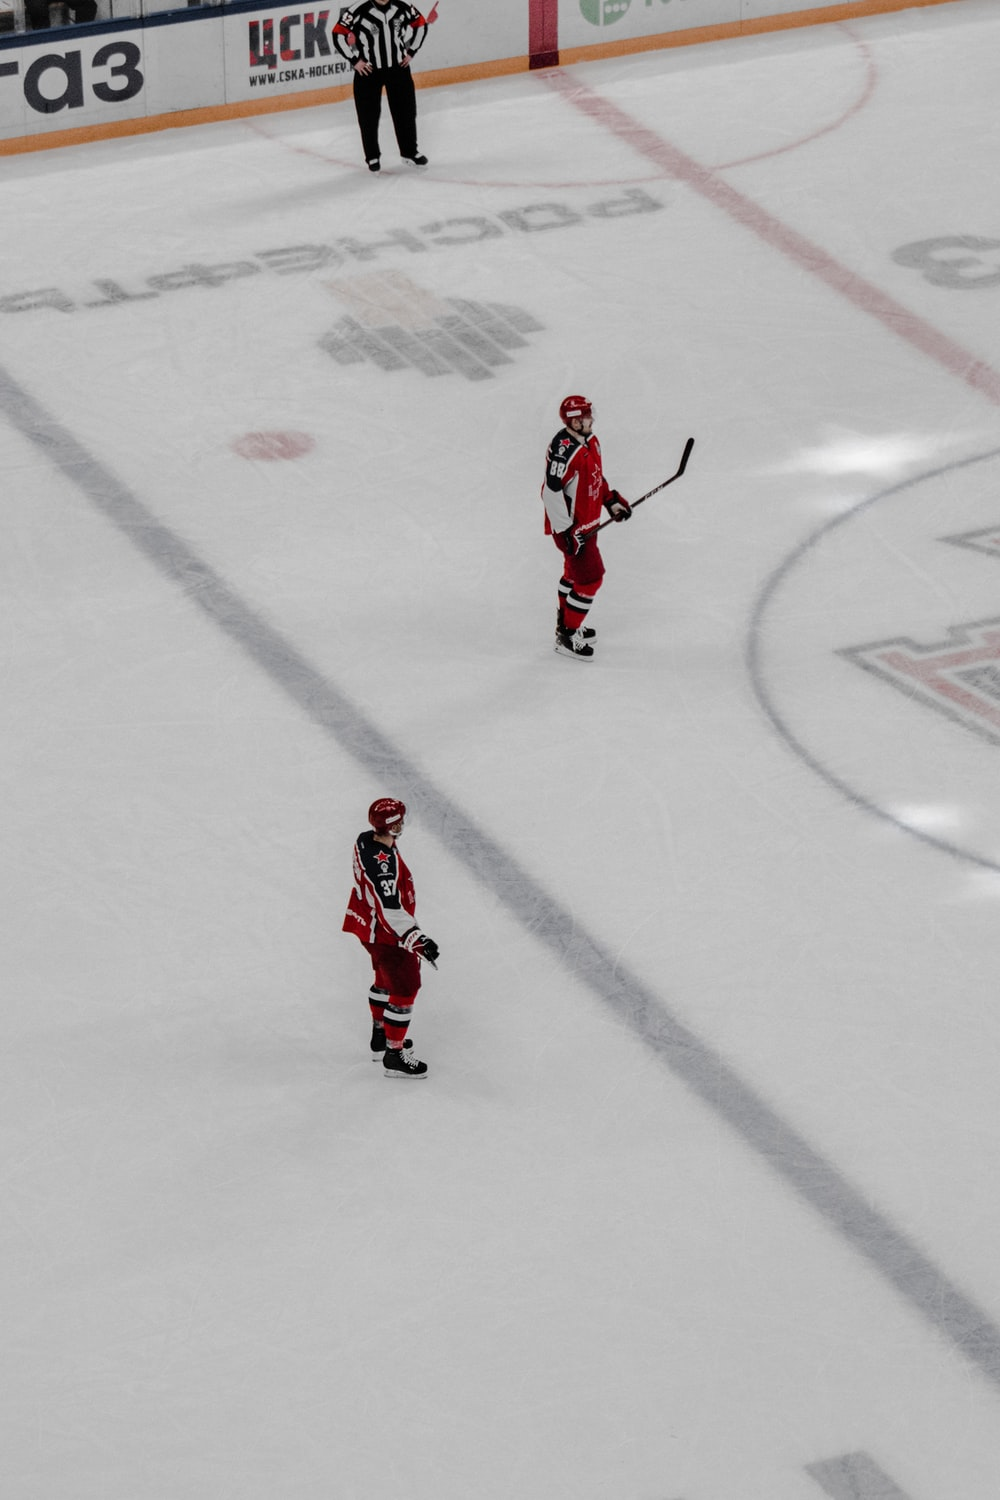 man in red and white jersey shirt and pants playing ice hockey